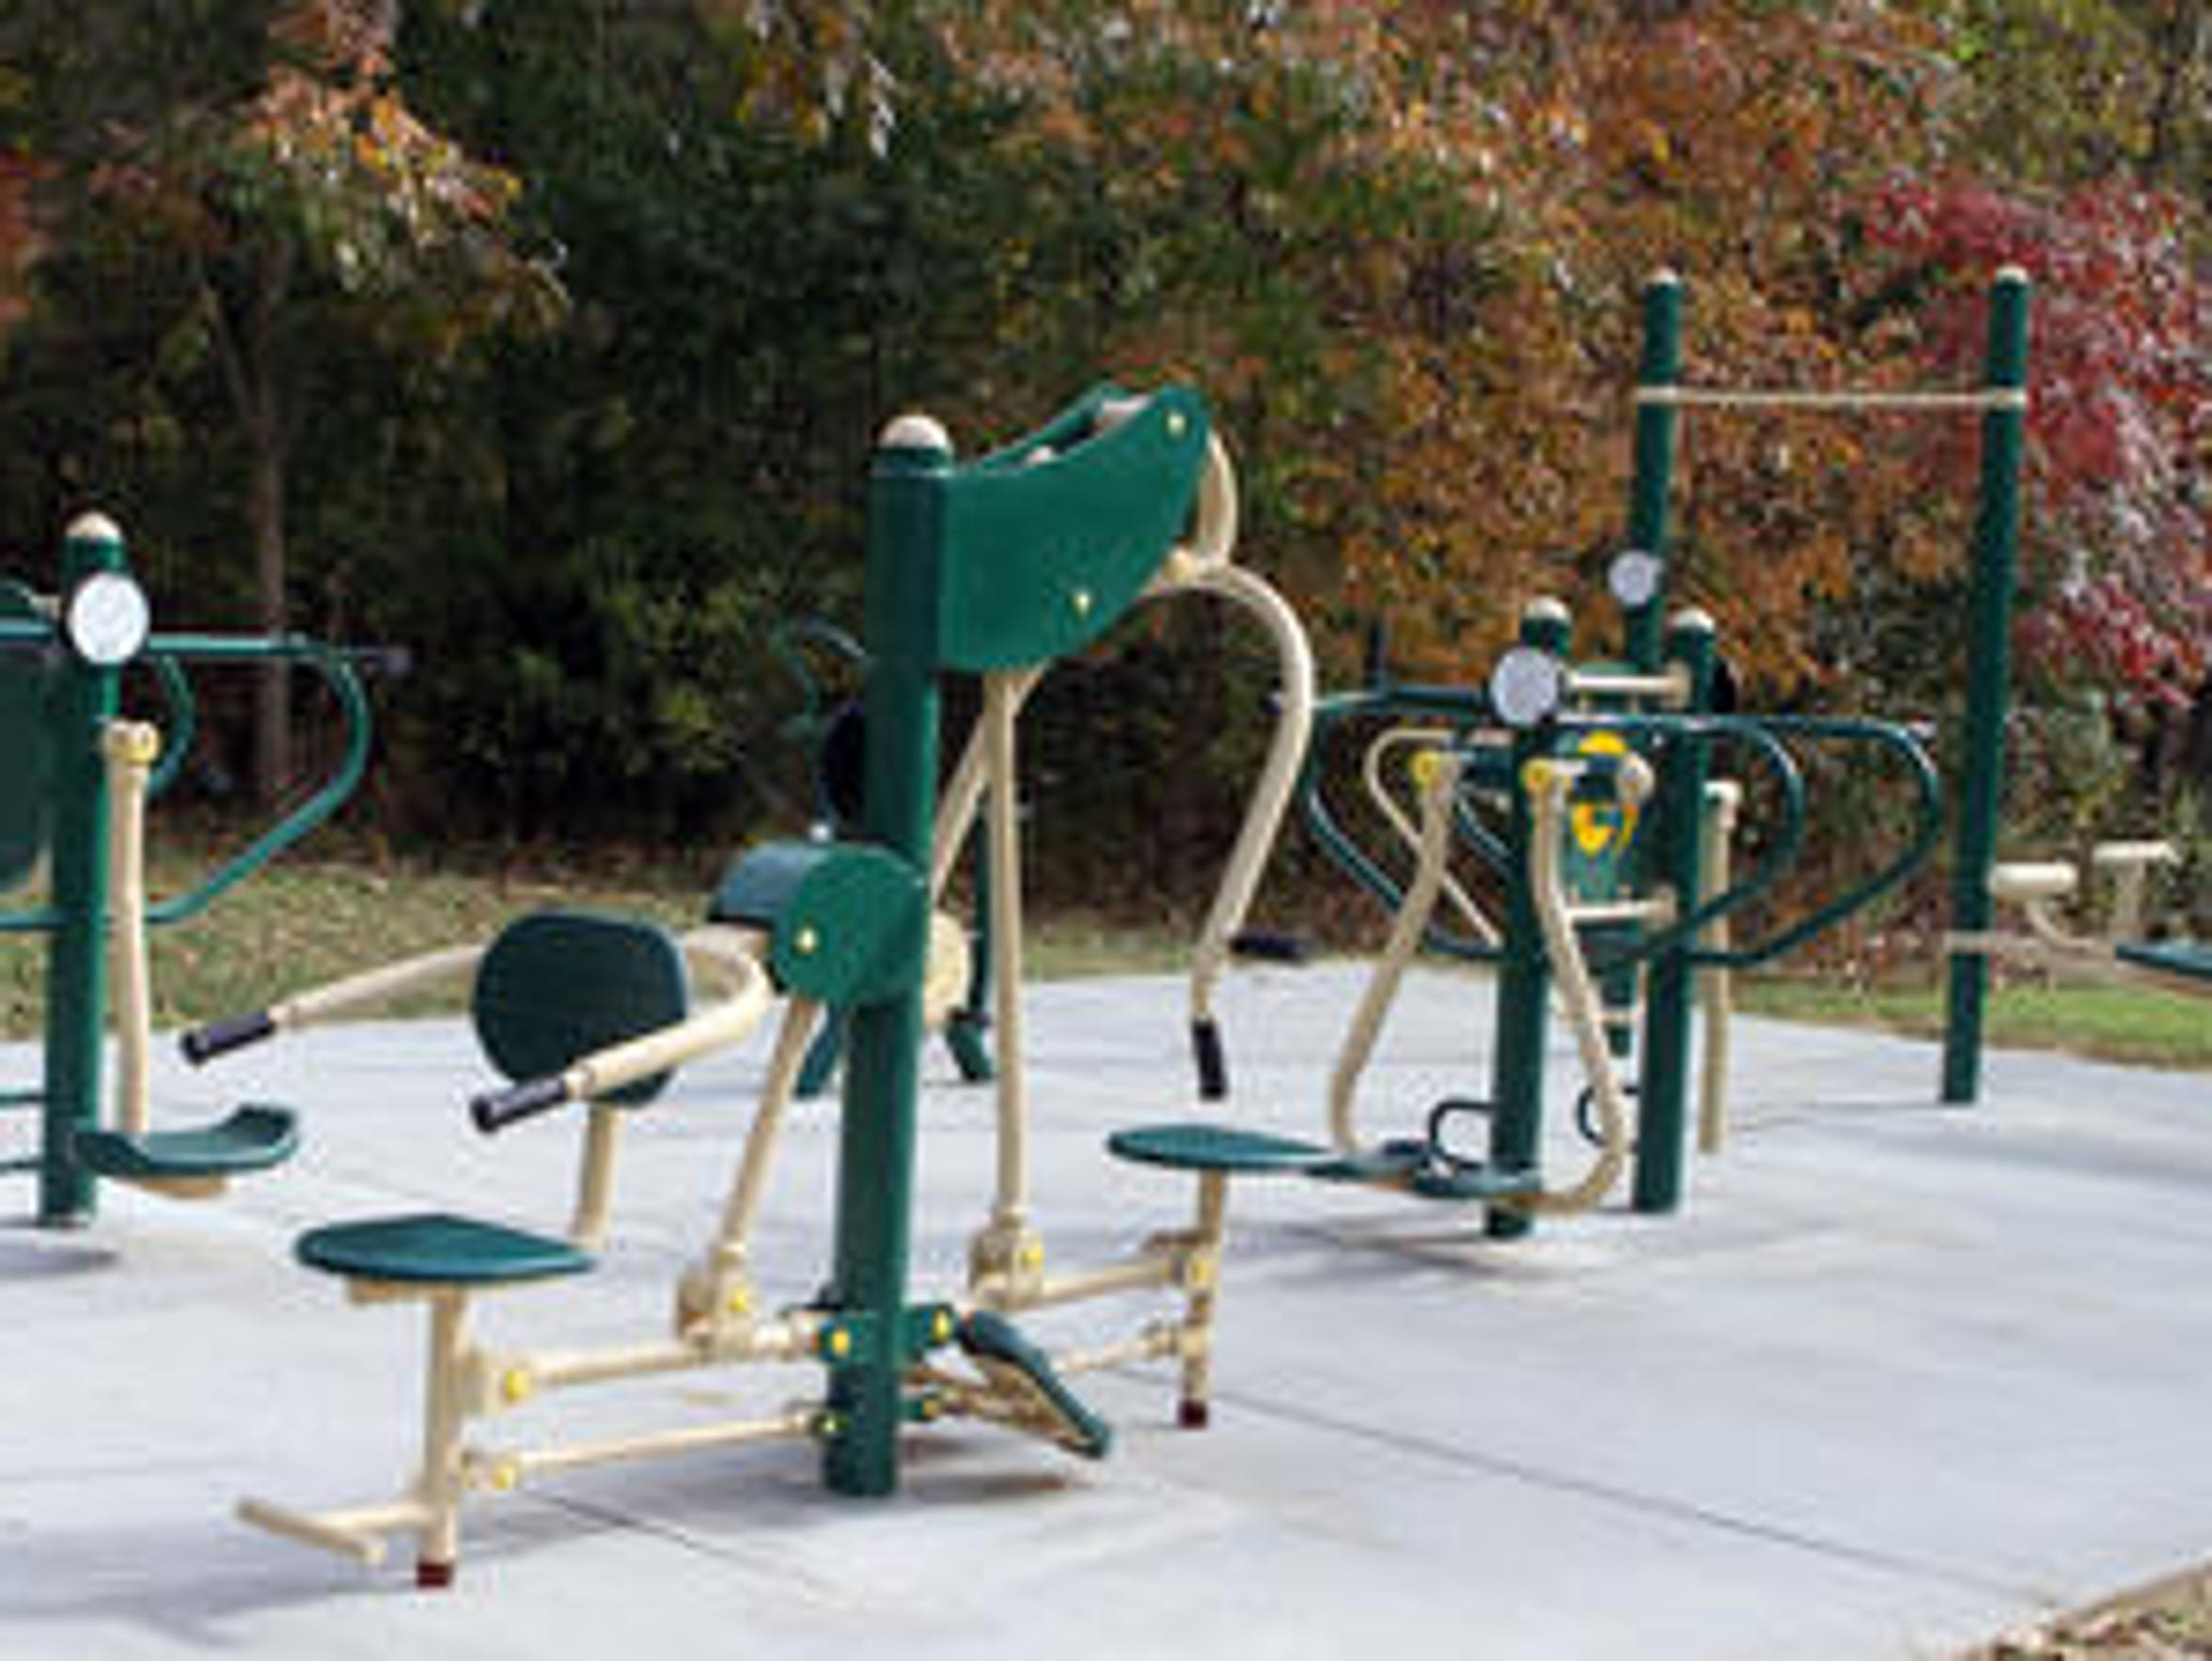 The new outdoor gym at Clarksville Greenway's Mary's